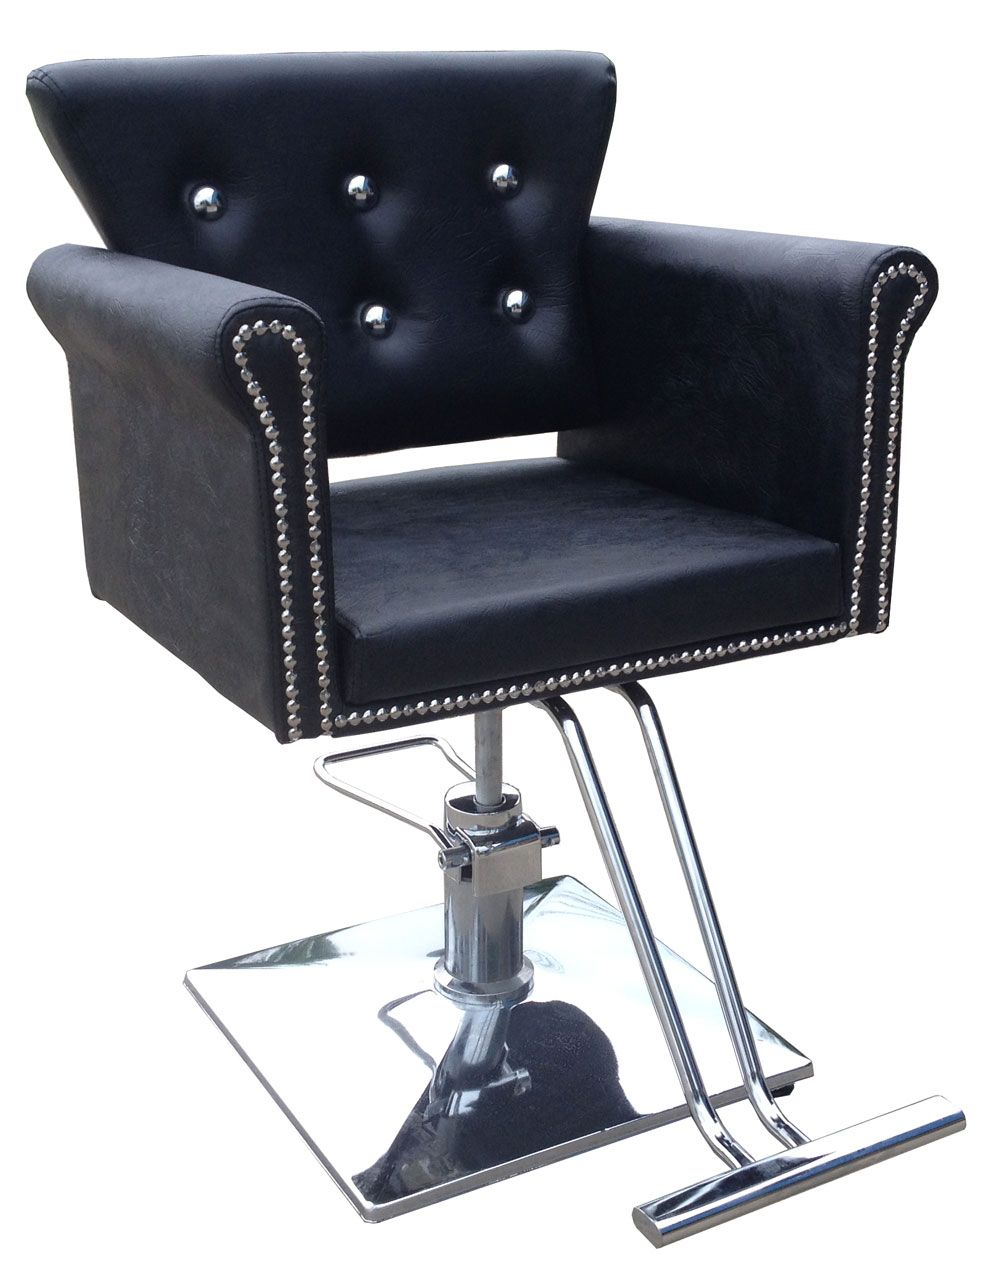 canada pacakges hair elegant spa wholesale toronto furniture cheap salon equipment of